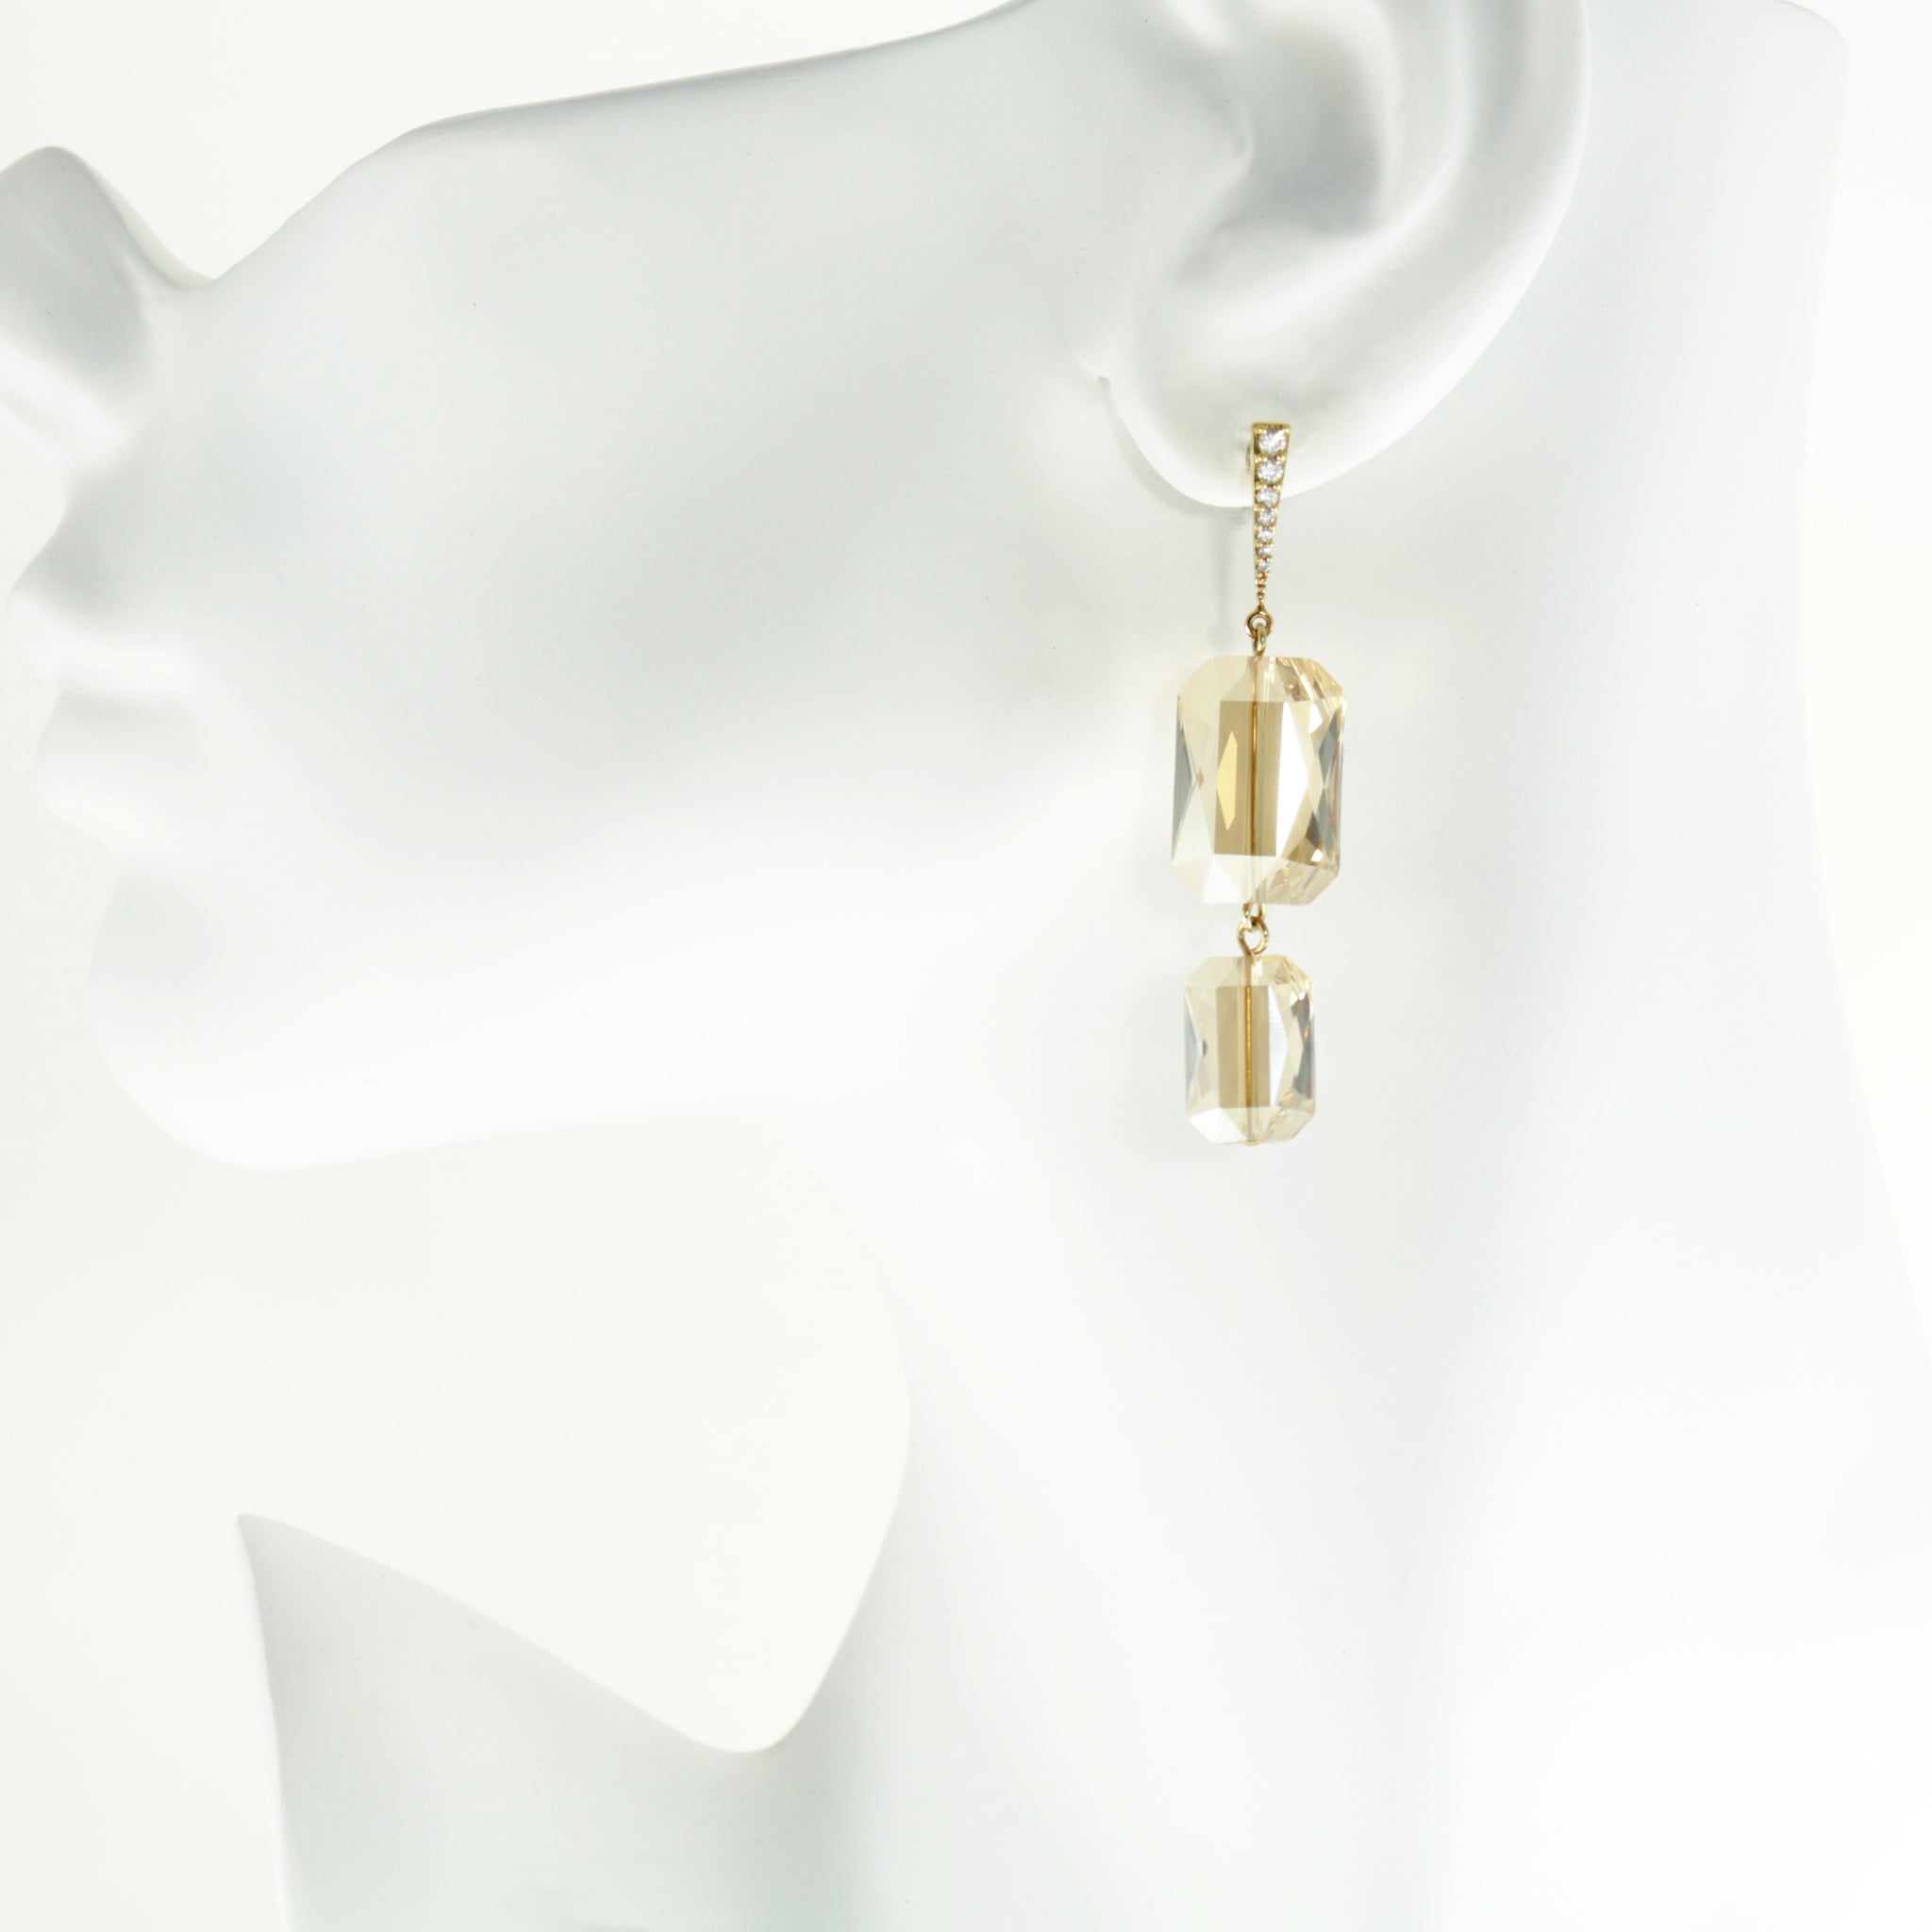 Plaza Earrings in Golden Shadow